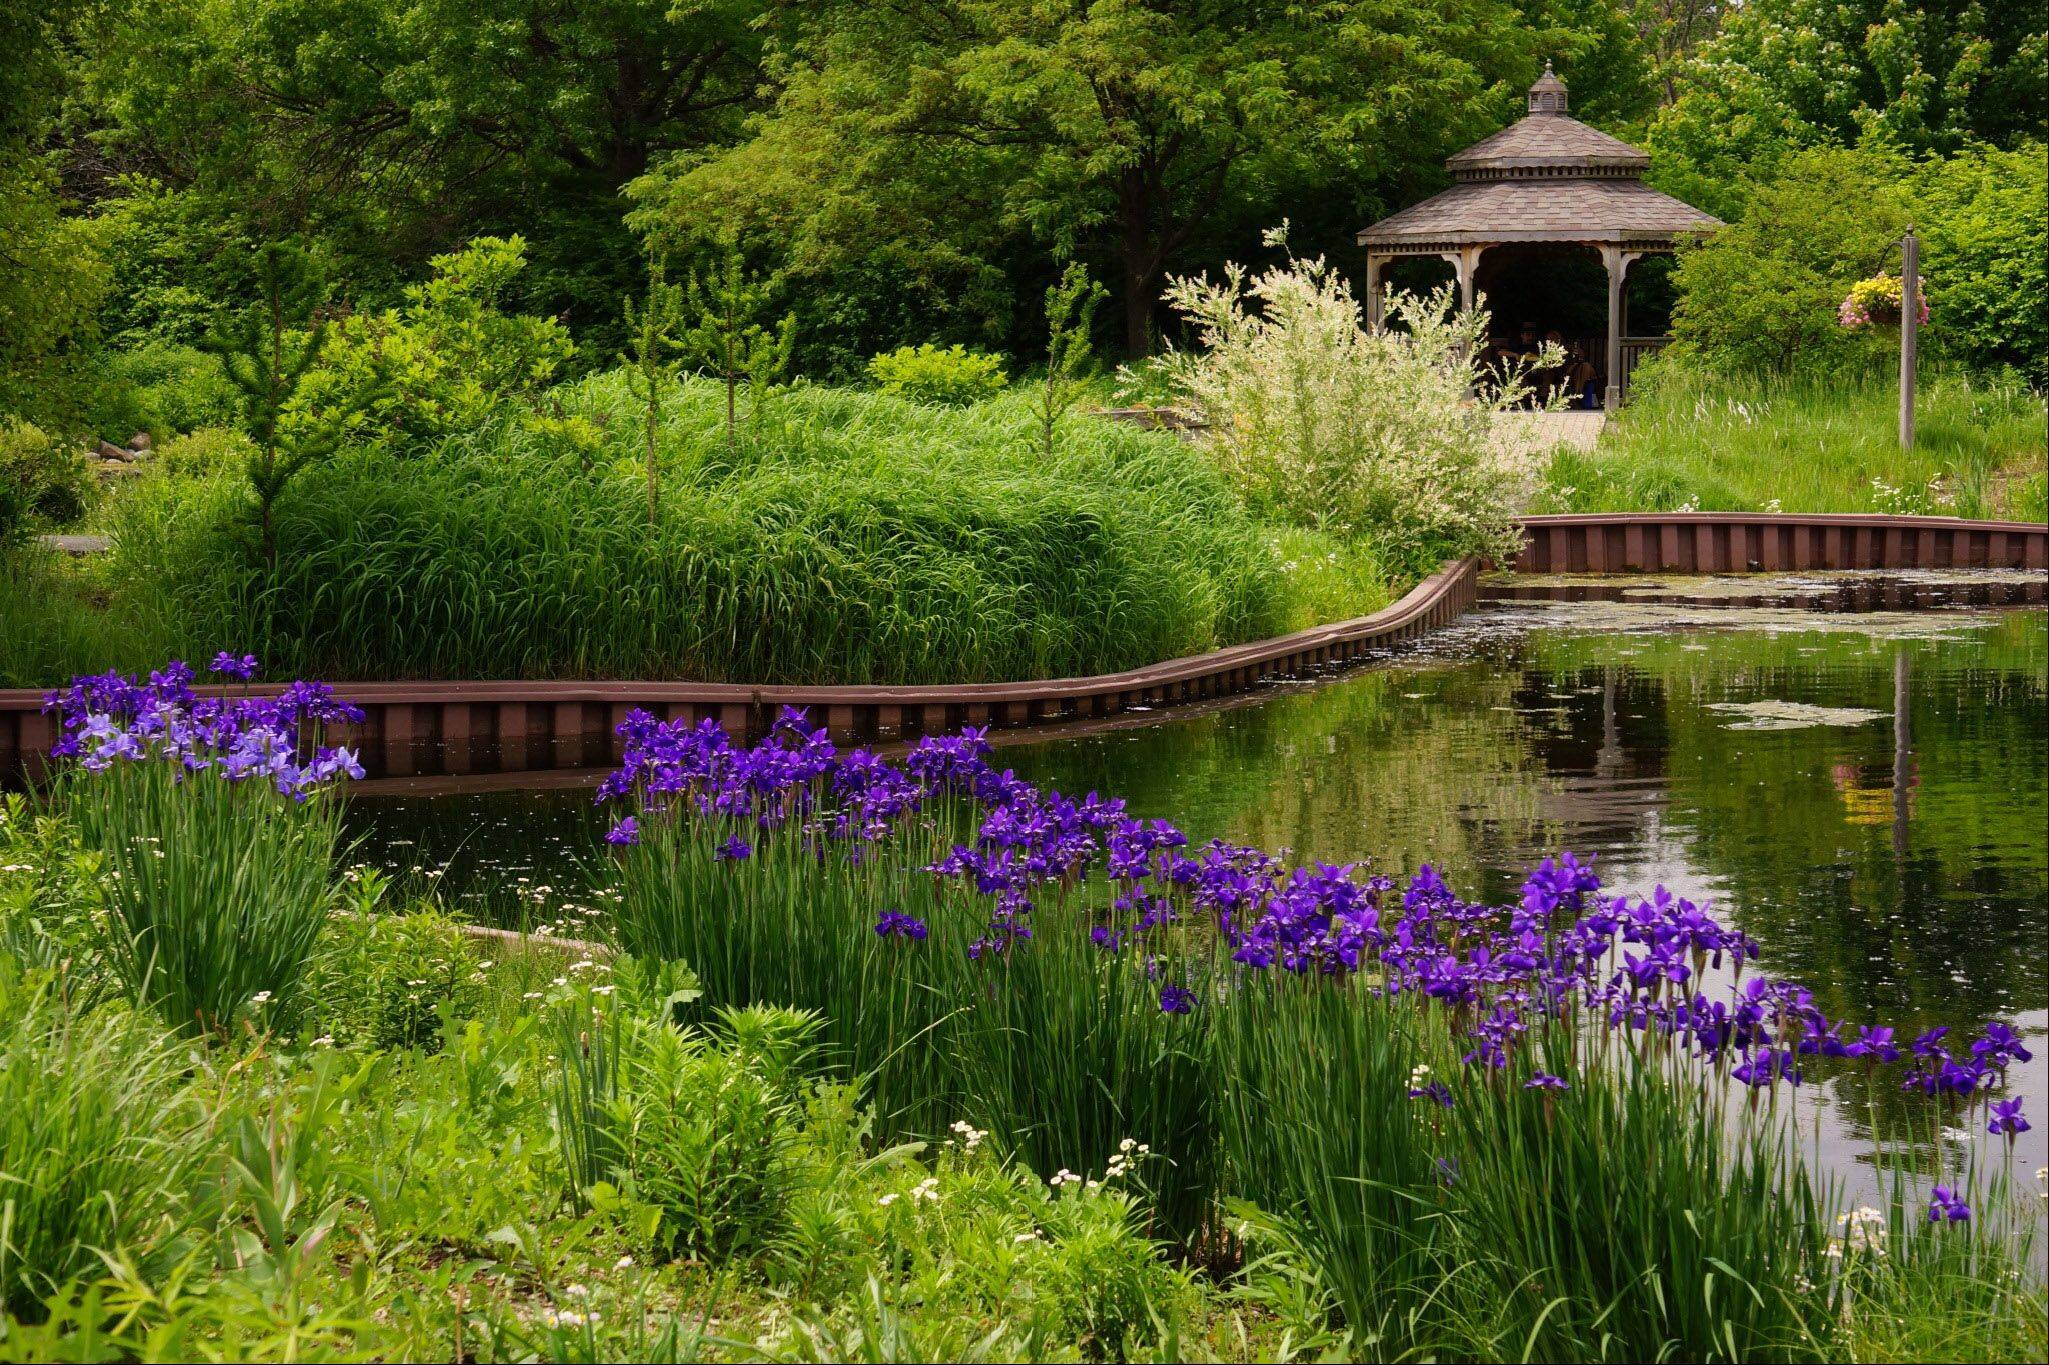 While I was on a summer trip to Cantigny Gardens in Wheaton these foreground irises and the grasses lining the pond led my eye to the inviting gazebo in the distance. I just wanted to sit under its canopy, relax, and enjoy the sights and sounds of nature for a while.